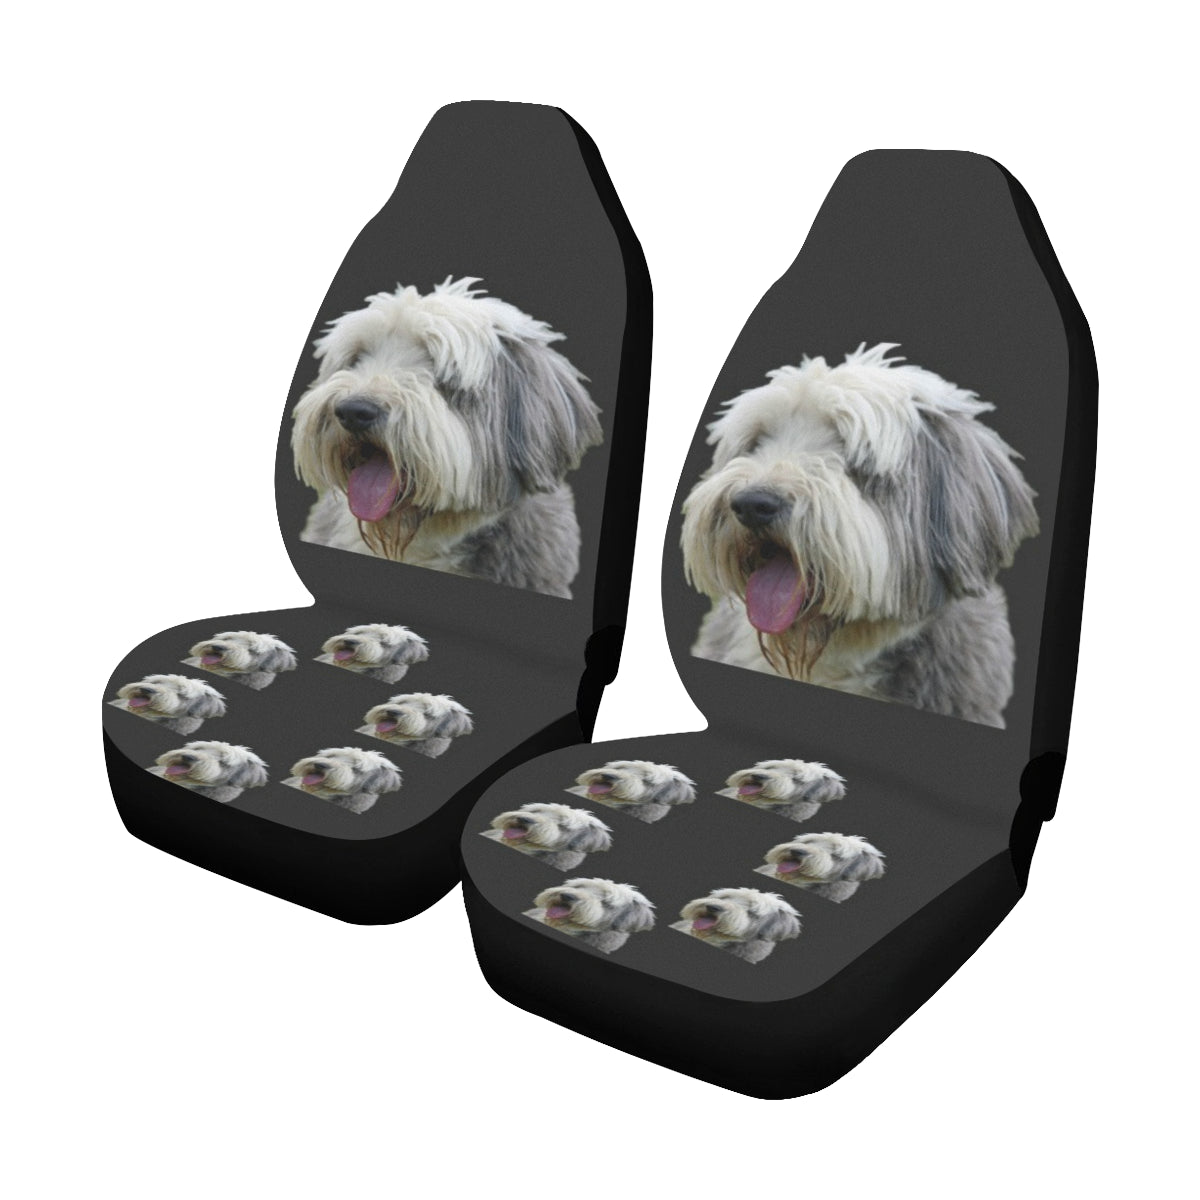 Bearded Collie Car Seat Covers (Set of 2)